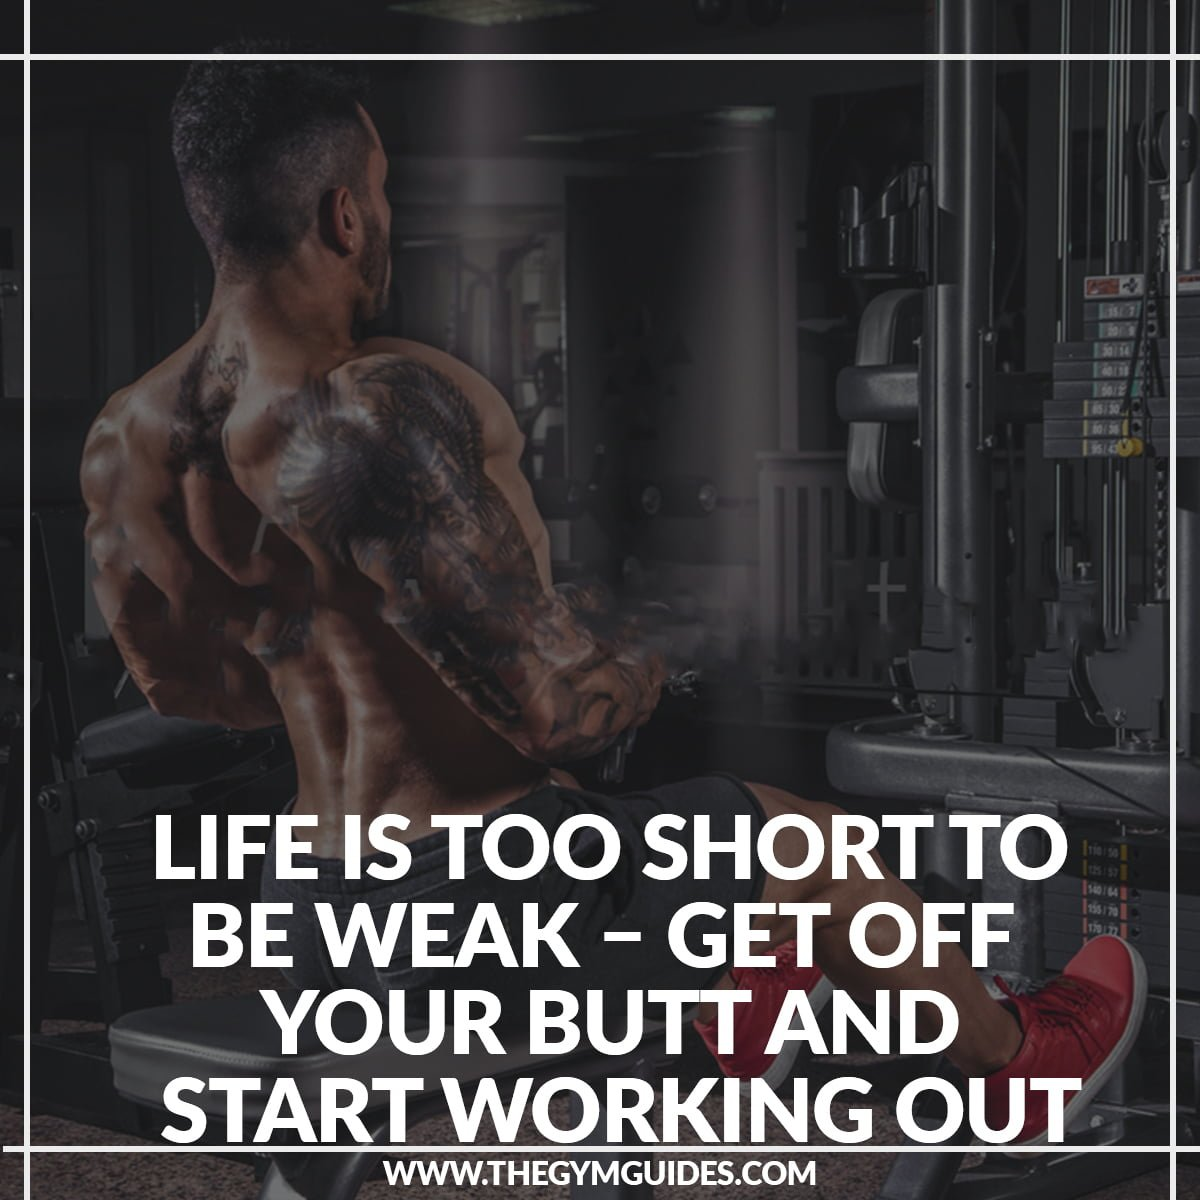 Life is too Short to be Weak – get off your butt and start working out